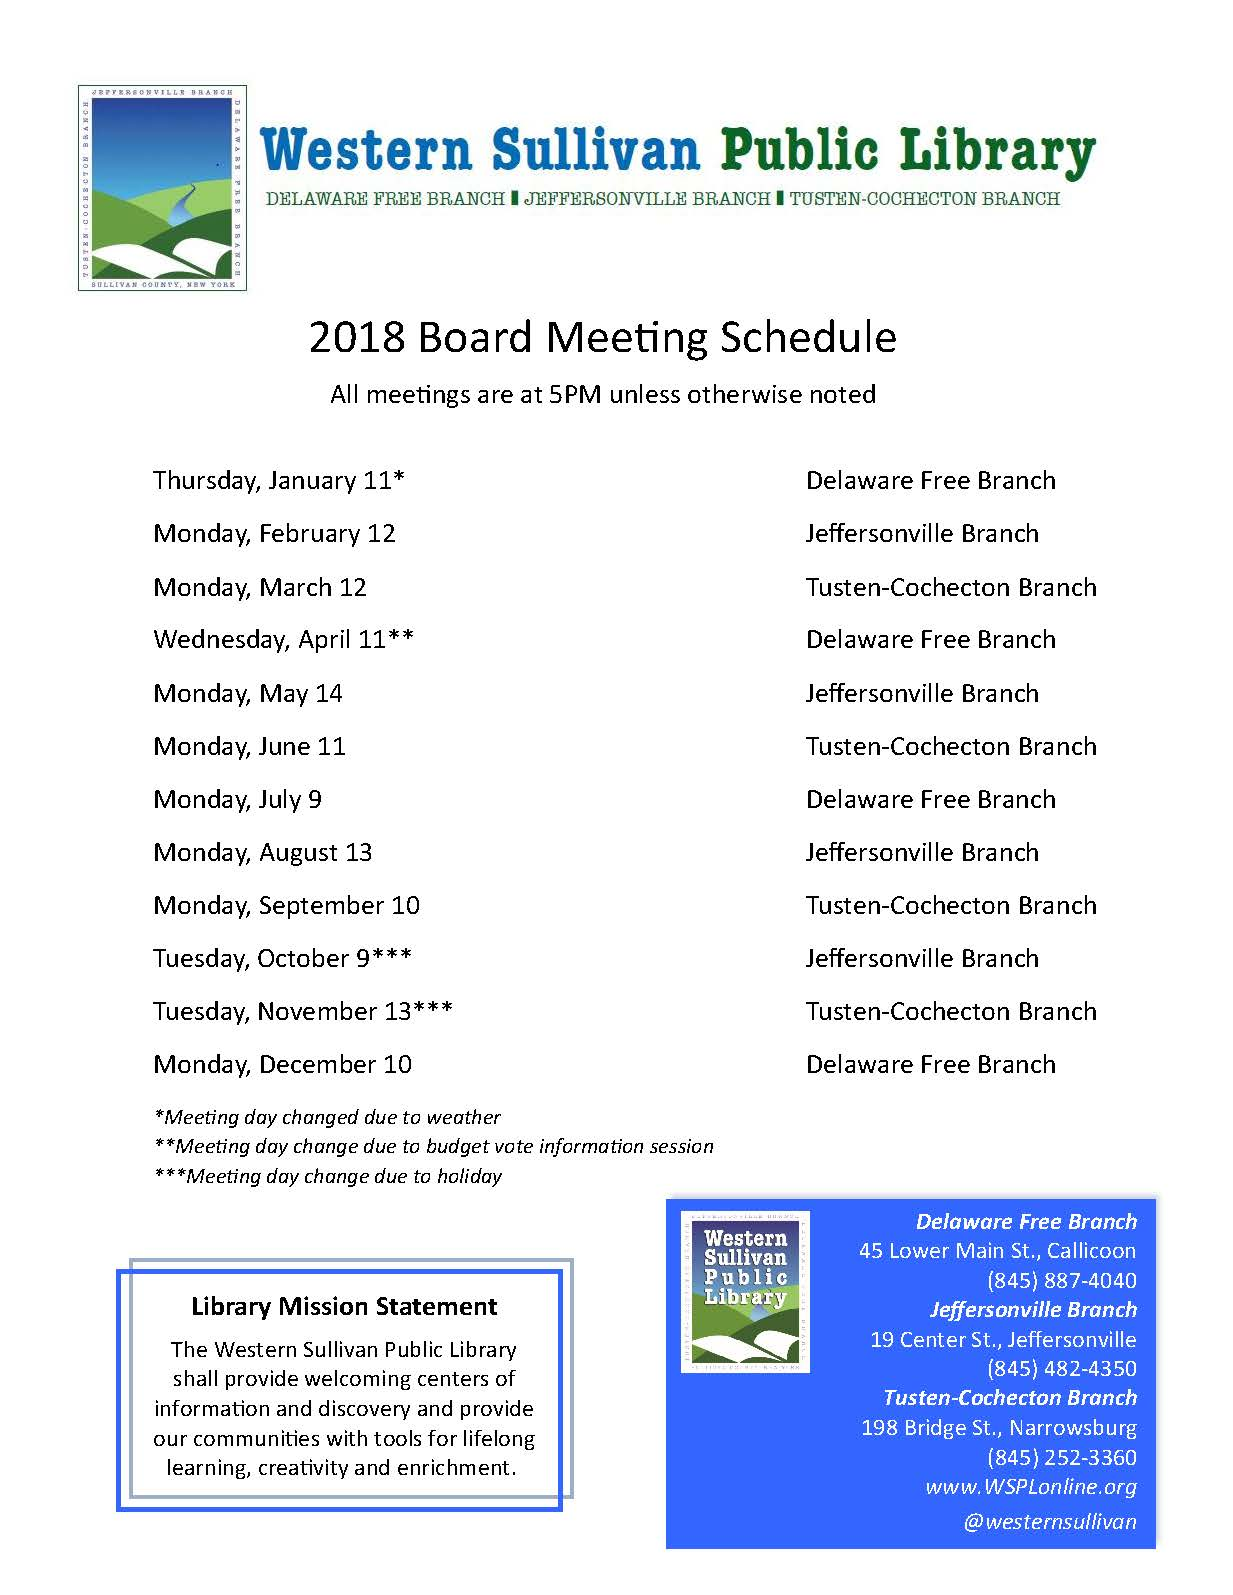 Uploaded Image: /uploads/images-resources/WSPL 2018 Board Meeting Schedule.jpg